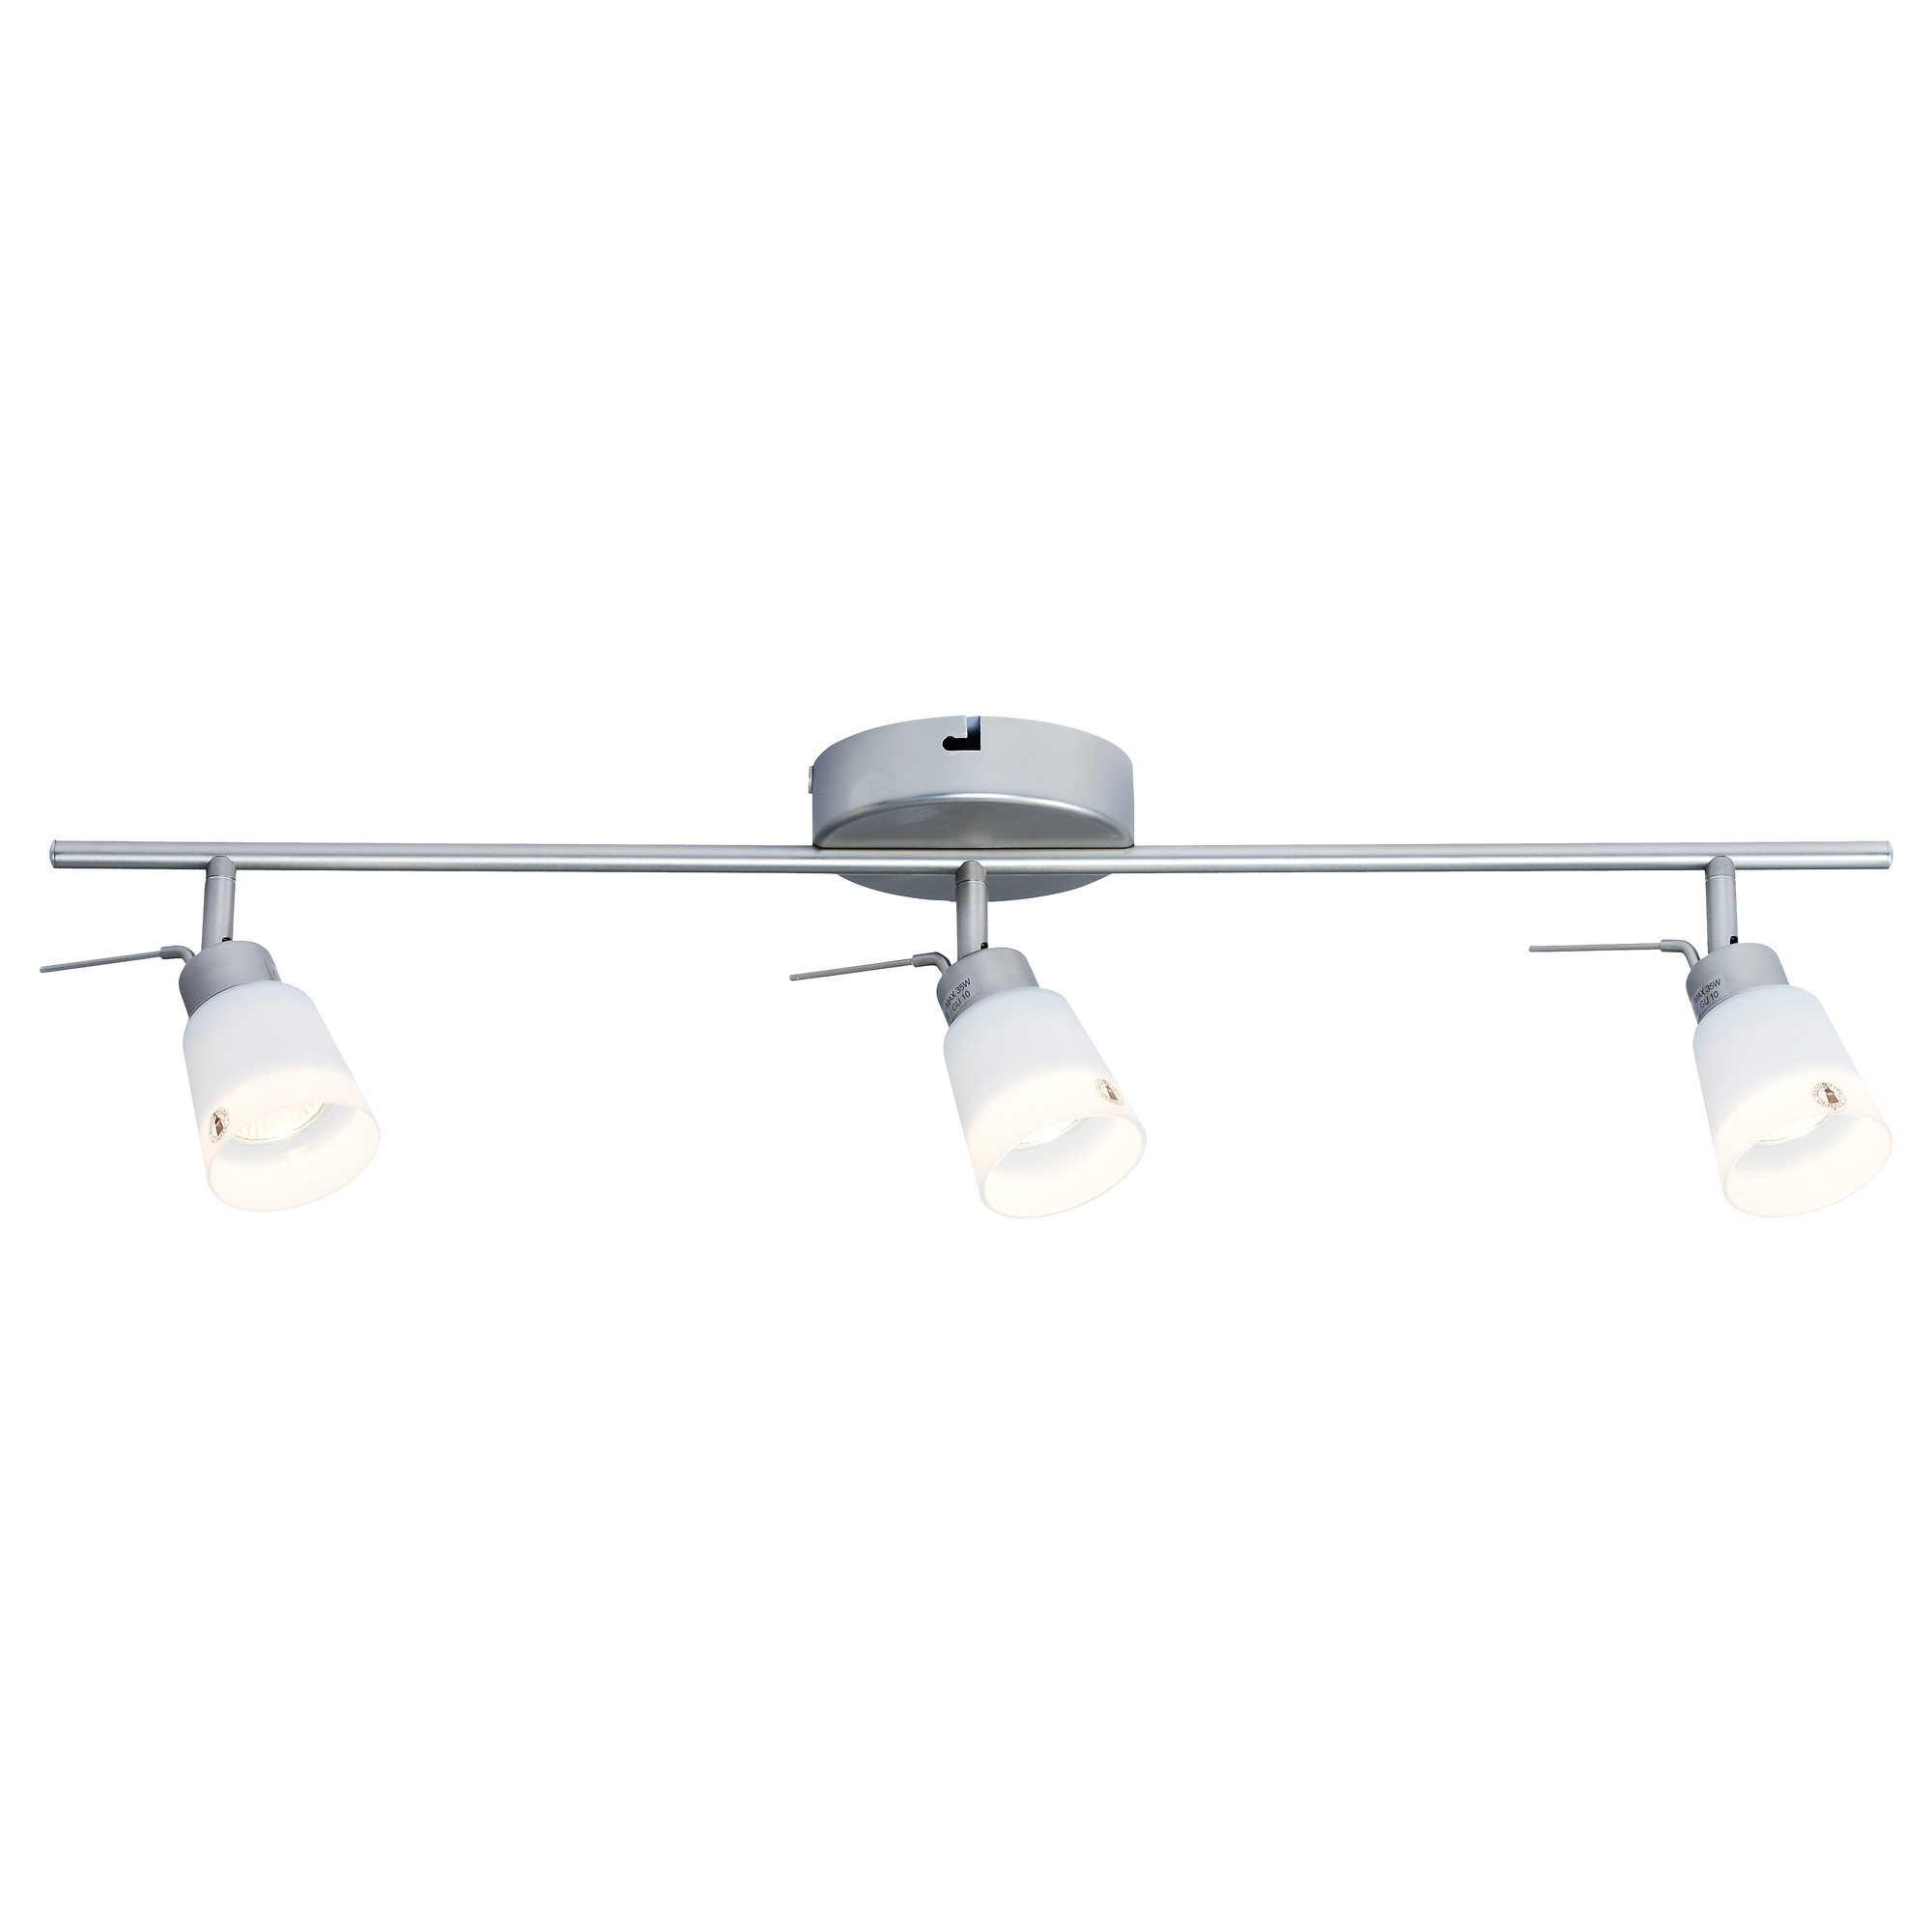 Basisk ceiling track 3 spotlights nickel plated white spotlight basisk ceiling track 3 spotlights ikea lighting replacement for kitchen mozeypictures Gallery